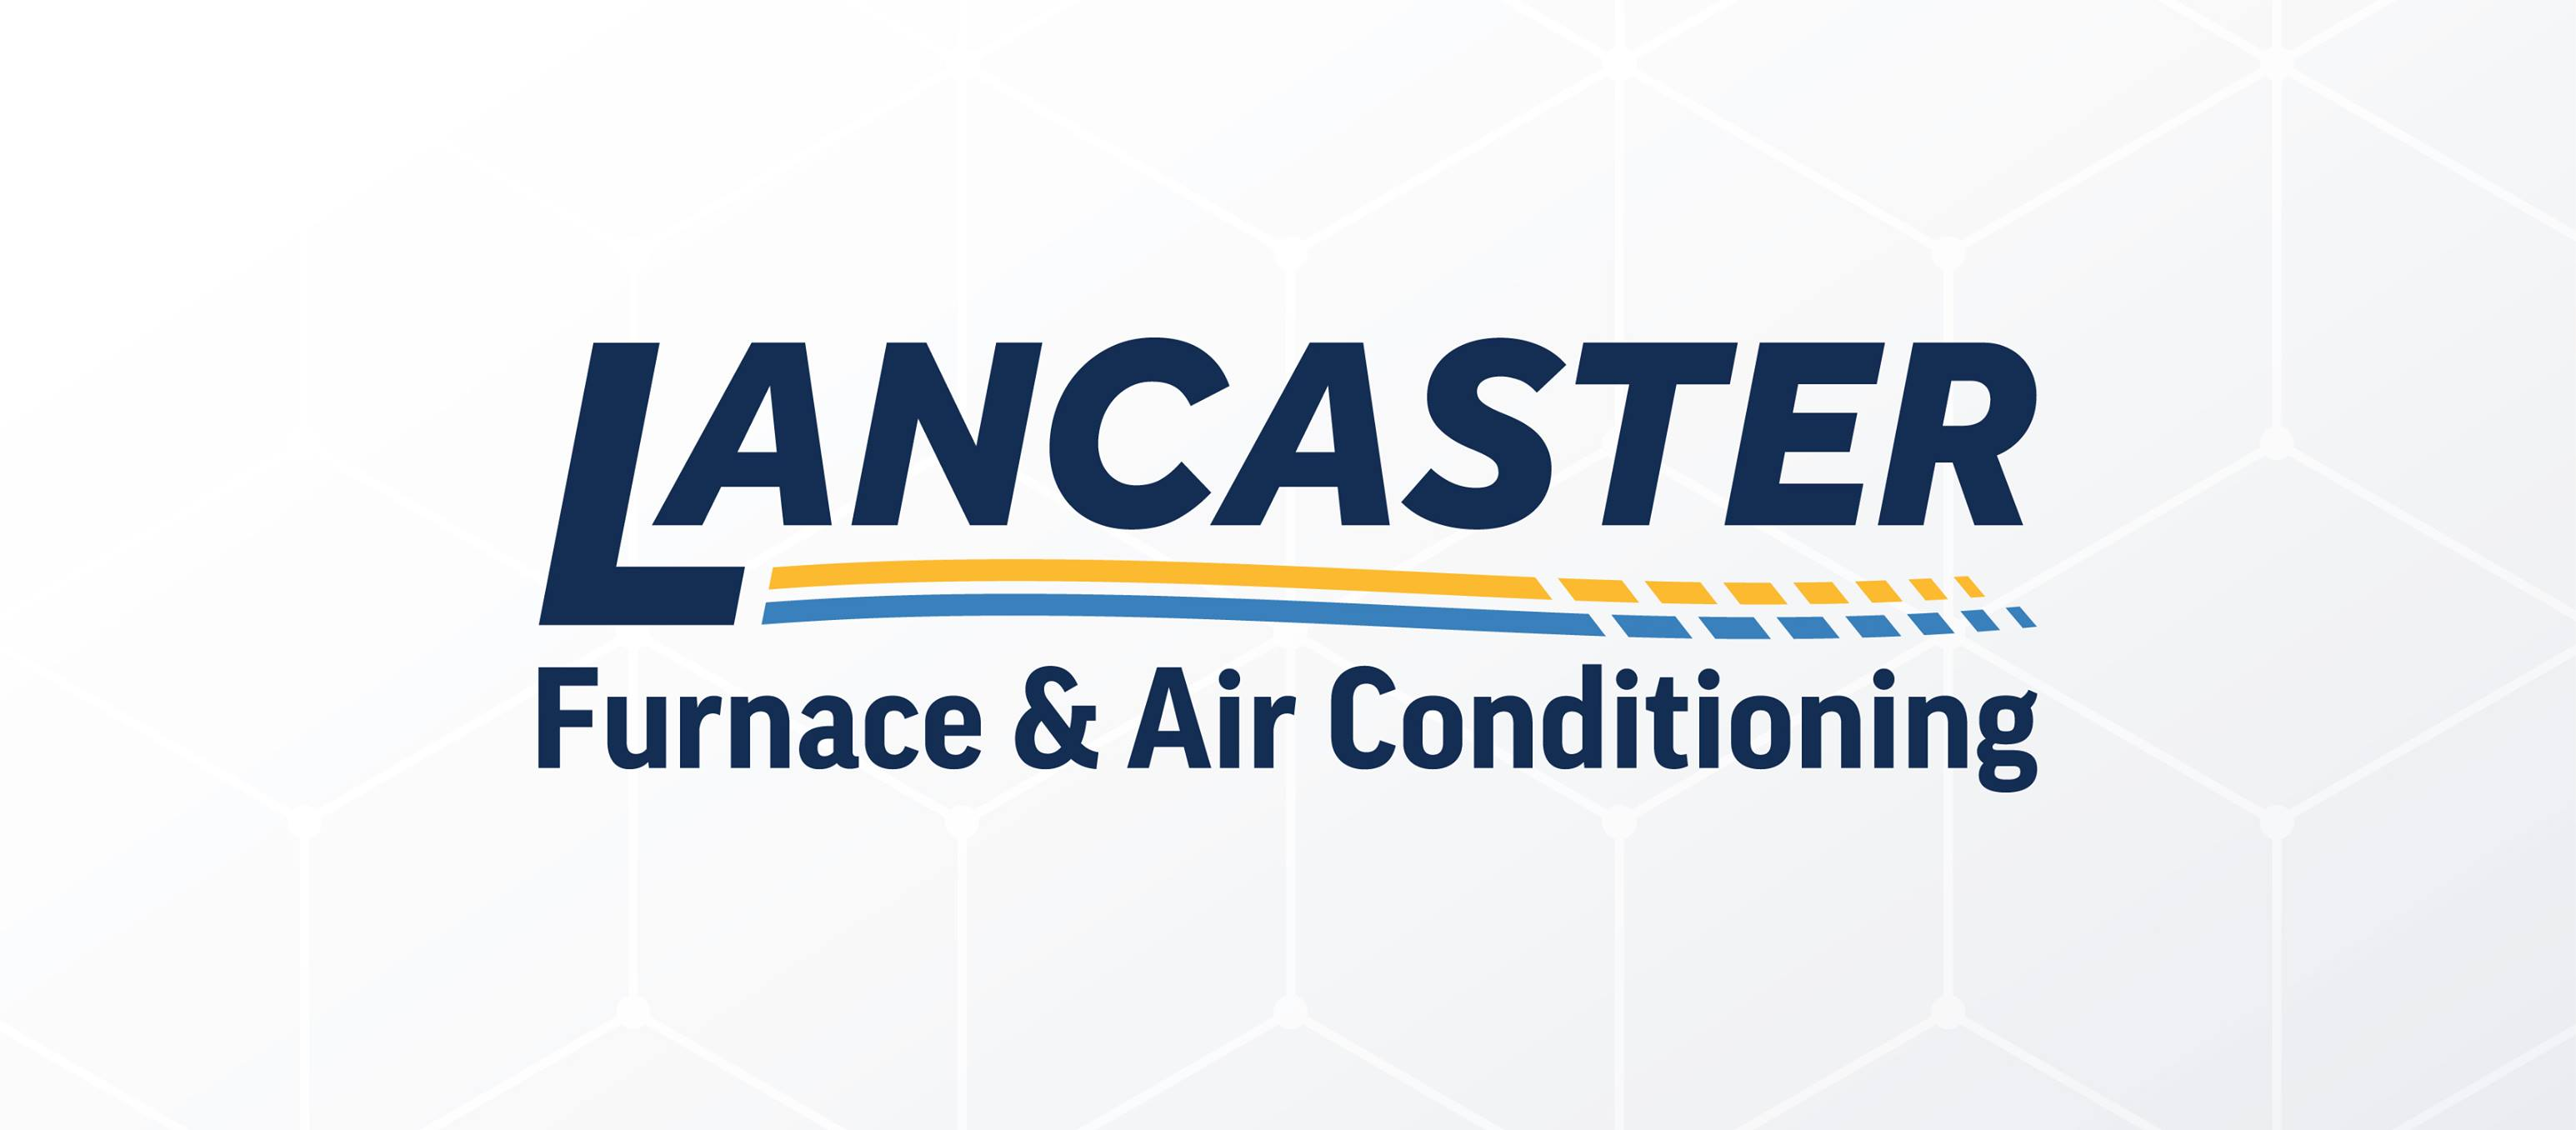 Lancaster Furnace & Air Conditioning Reviews, Ratings   Heating & Air Conditioning/HVAC near 117 West Main Street , Lancaster OH